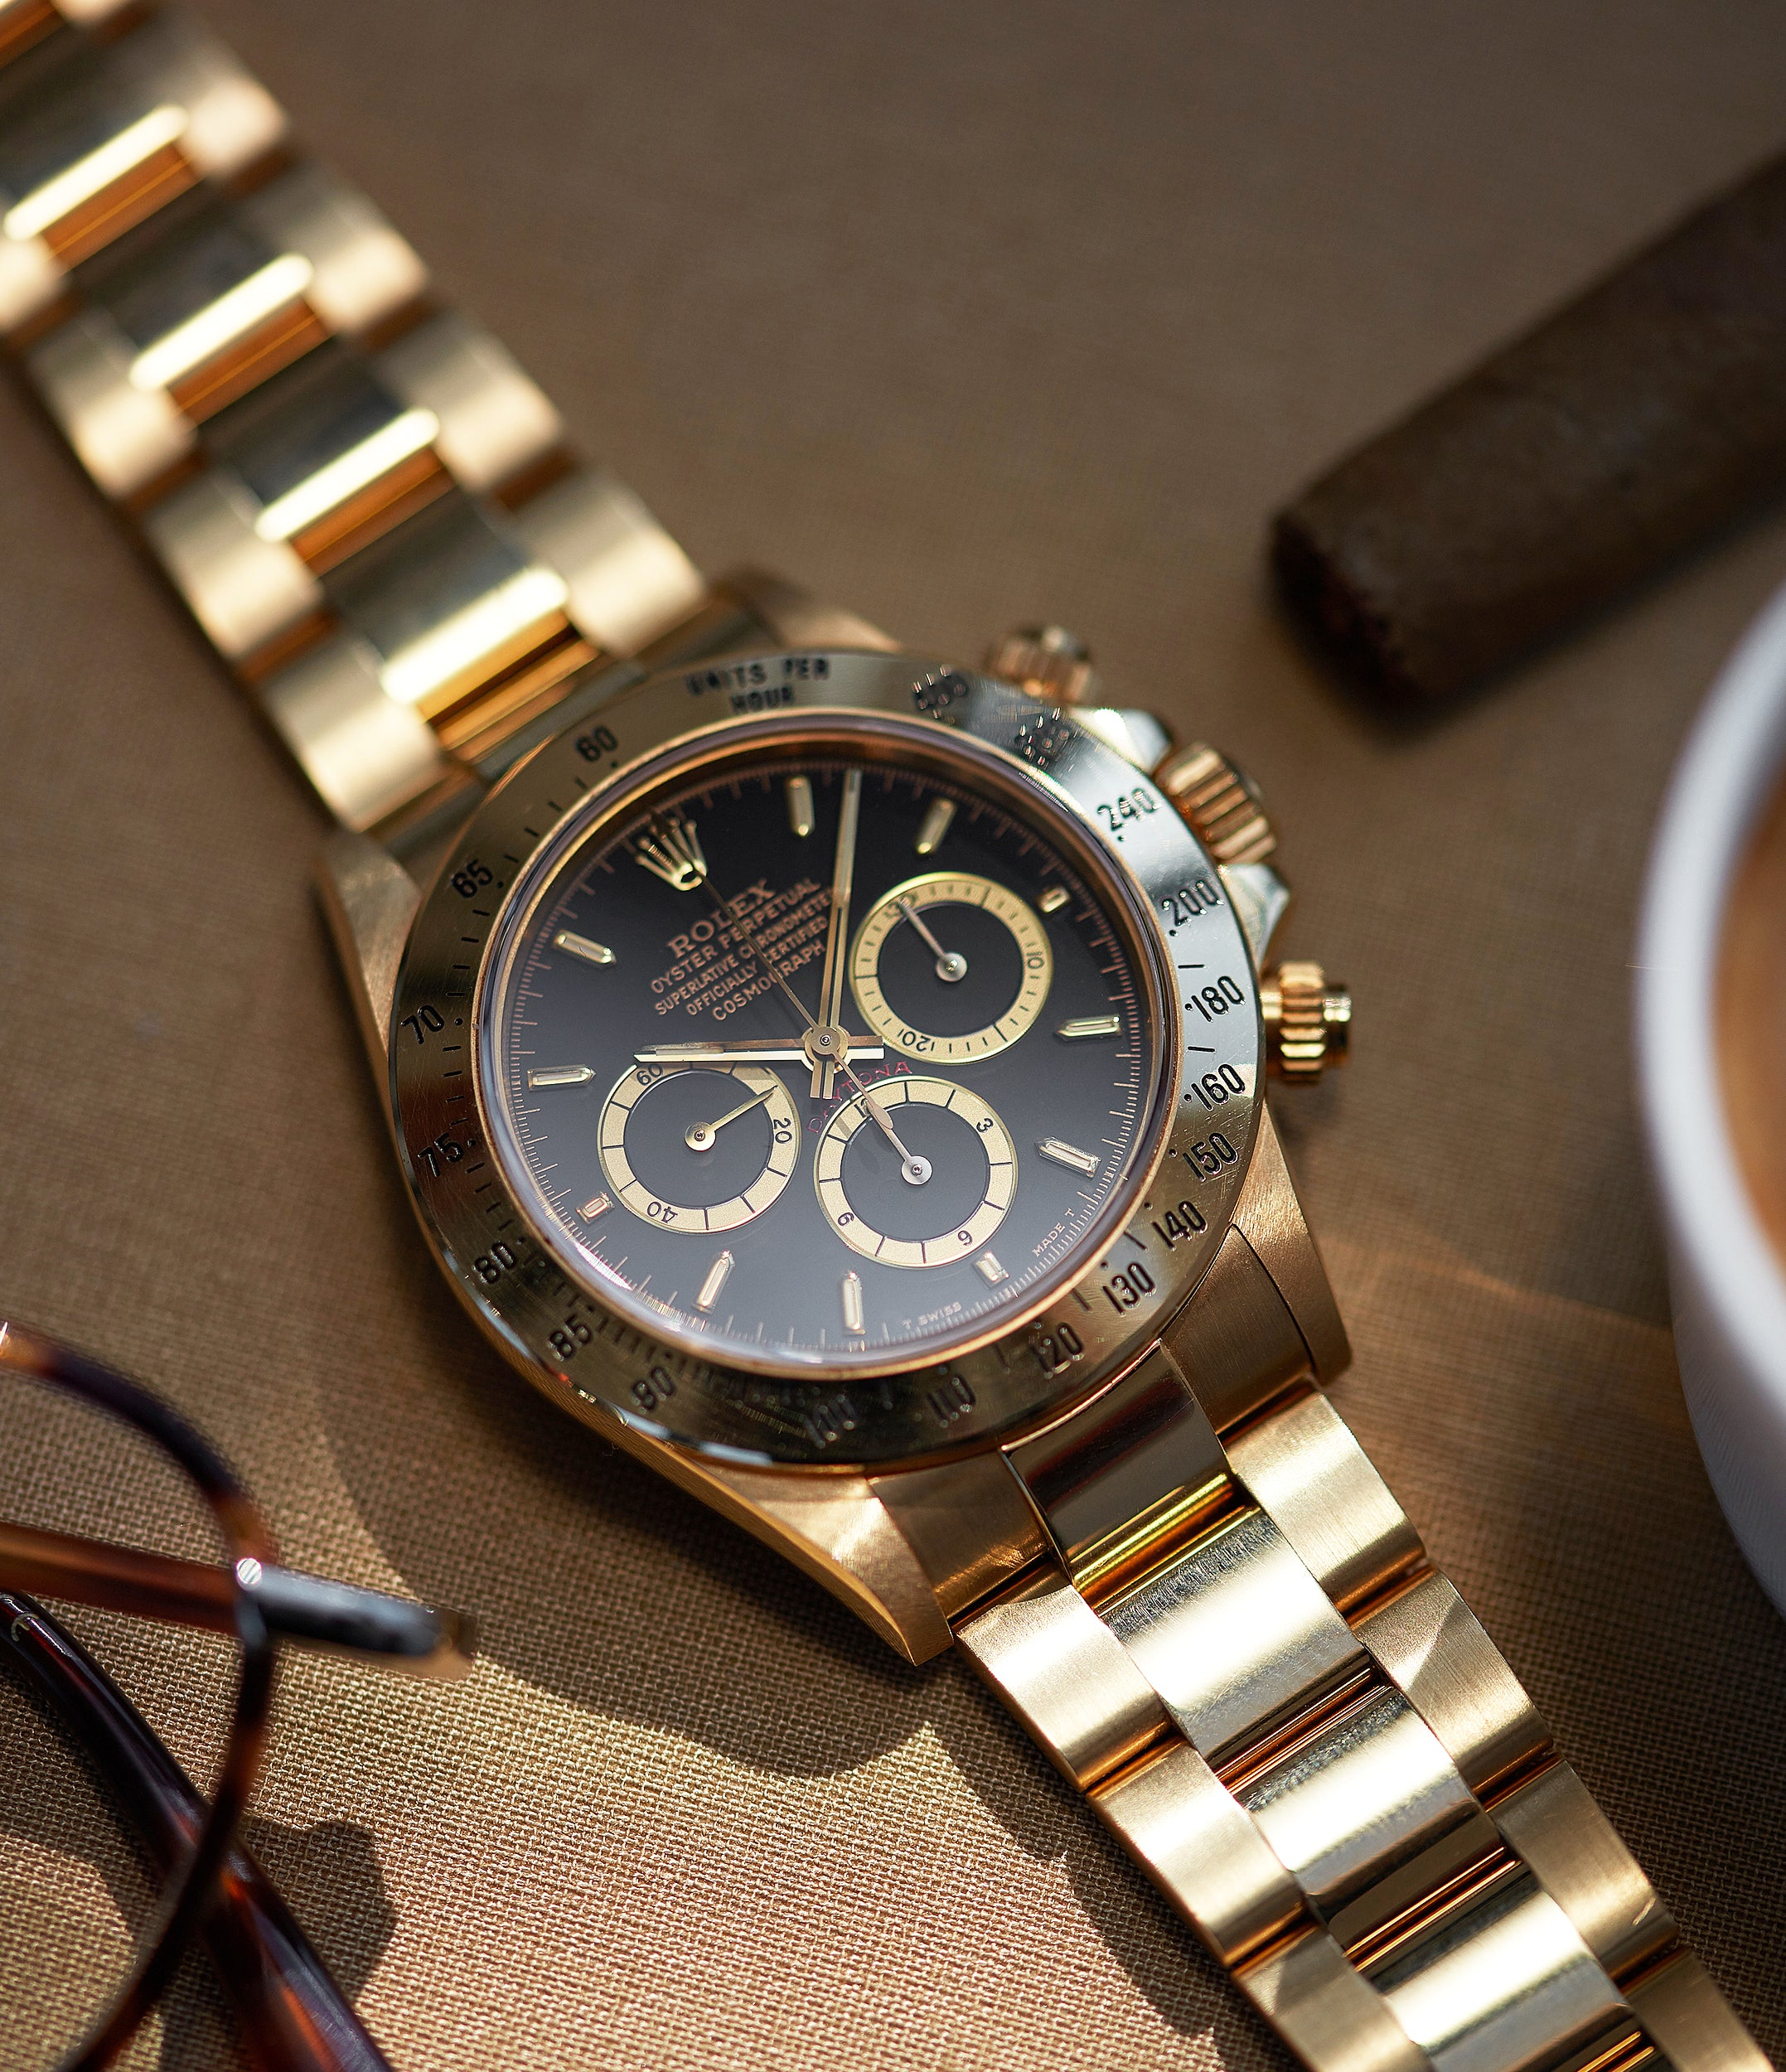 Rolex Automatique 16528 Daytona Zenith yellow gold black dial full set vintage watch for sale online at A Collected Man London UK specialist of rare watches